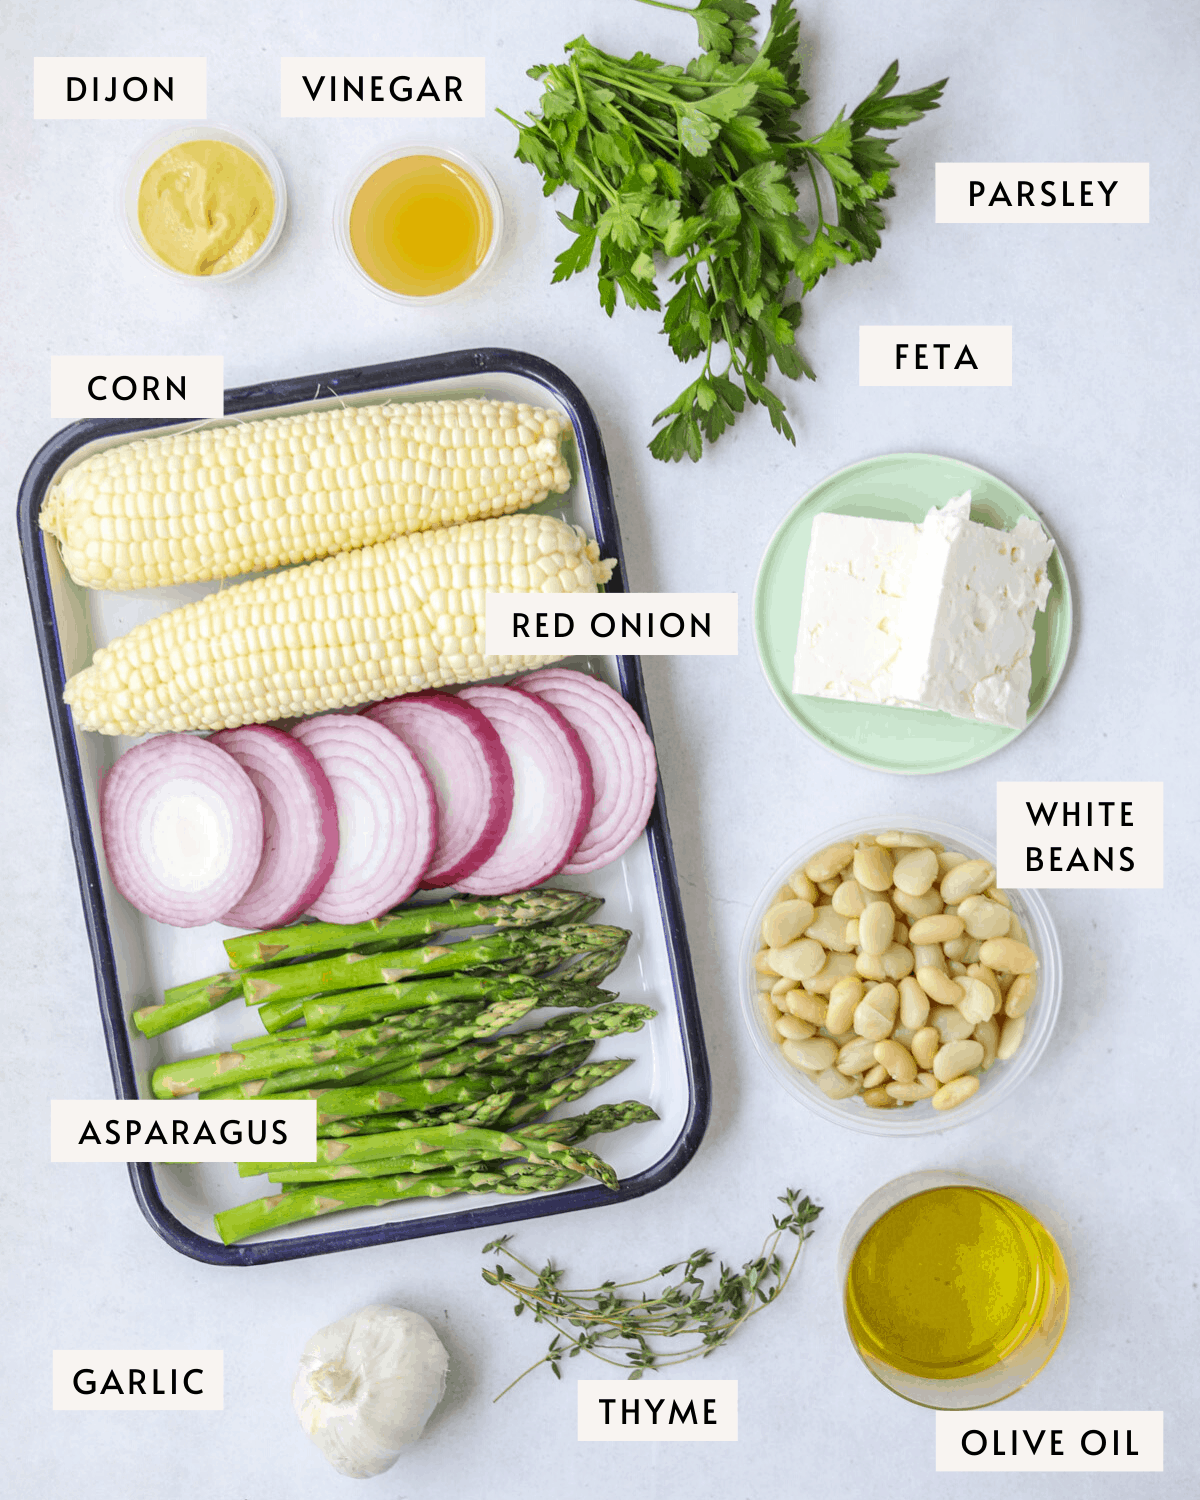 recipe ingredients individually portioned: a platter of corn, sliced red onion and asparagus, a cup of white beans, feta cheese, olive oil, garlic, thyme, parsley etc.